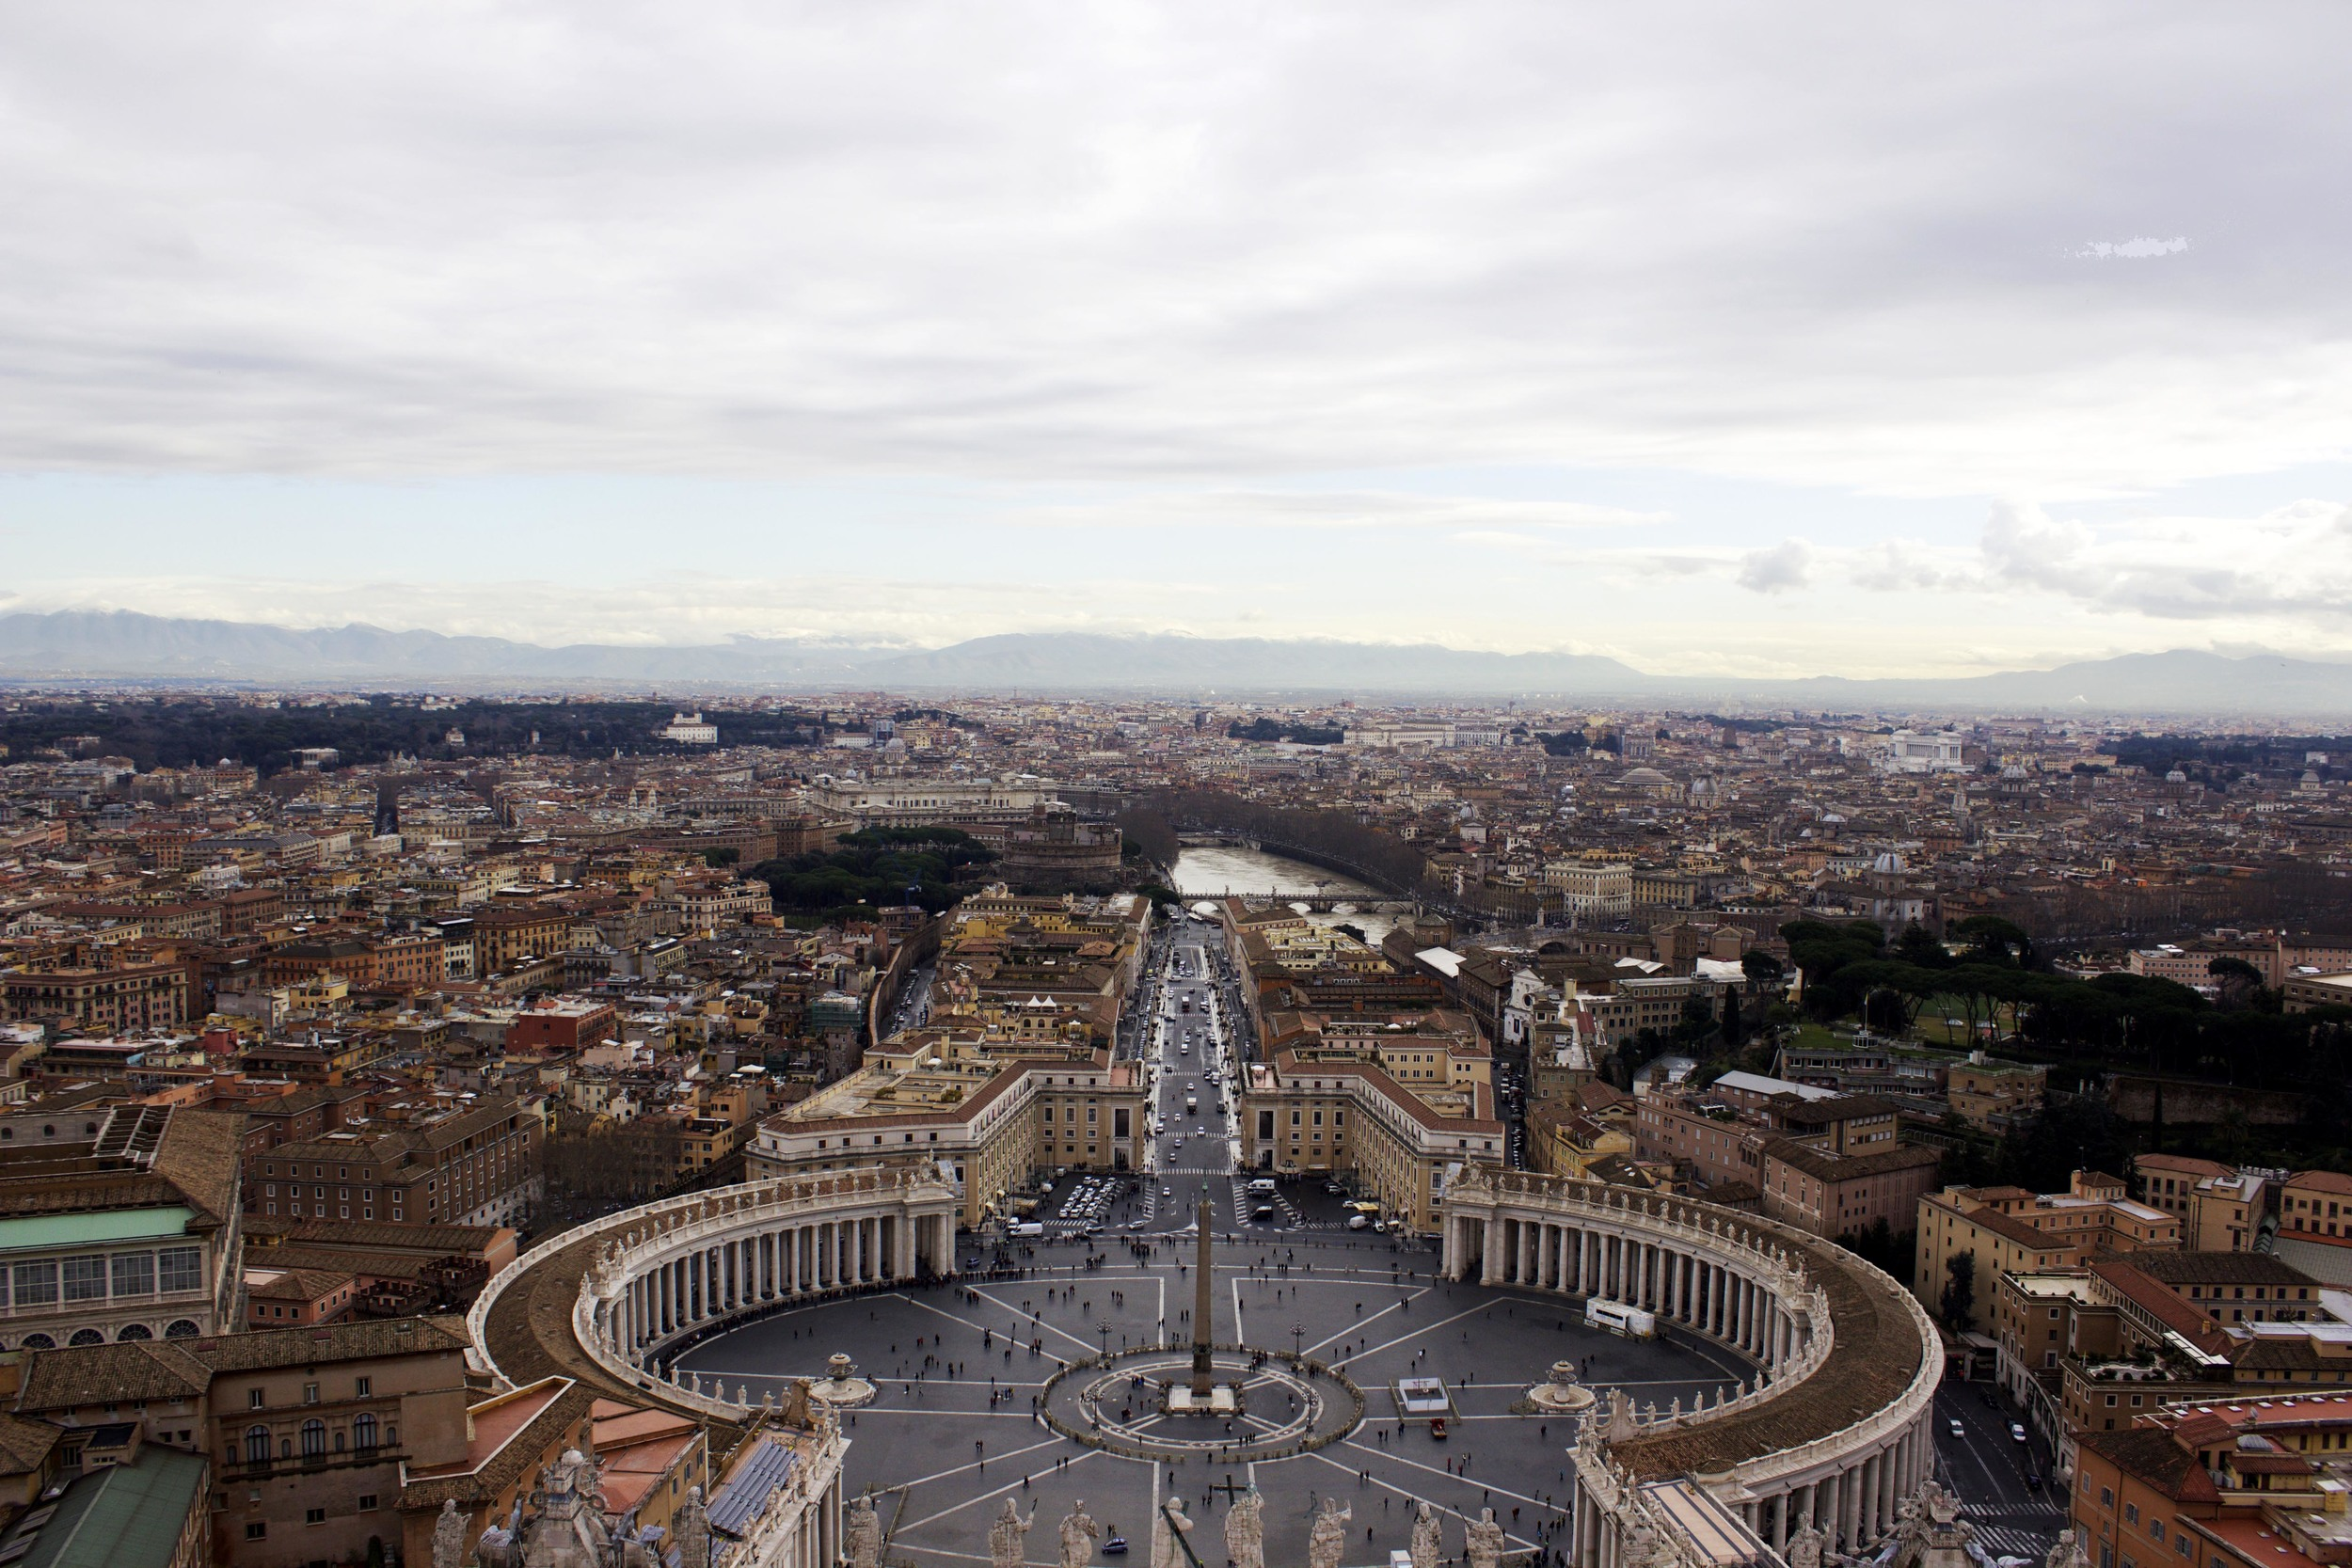 ^ The very rewarding view from the top of St. Peter's dome.